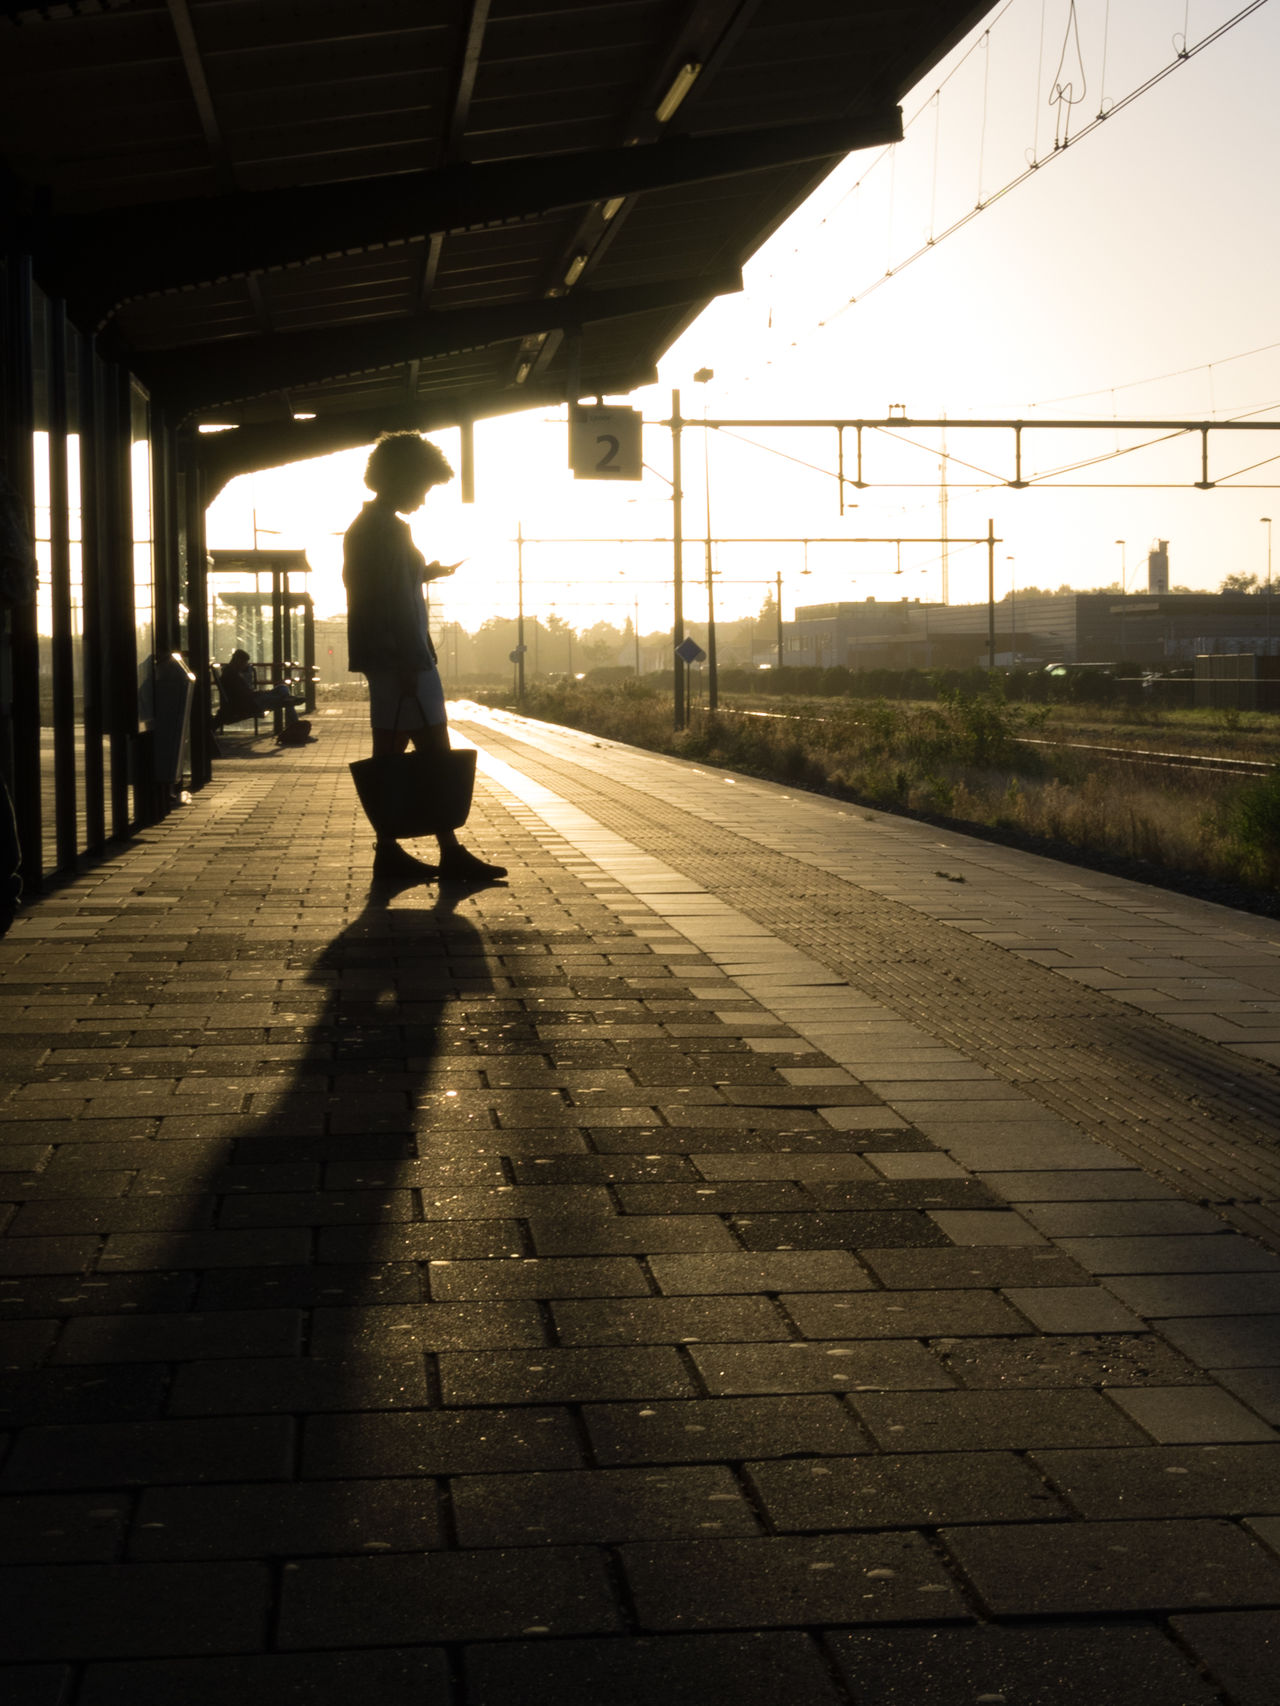 Adult Adults Only Commute Copy Space Full Length Morning One Person People Person Perspective Platform Real People Silhouette Station Sunrise The City Light Unrecognizable Person Waiting Woman